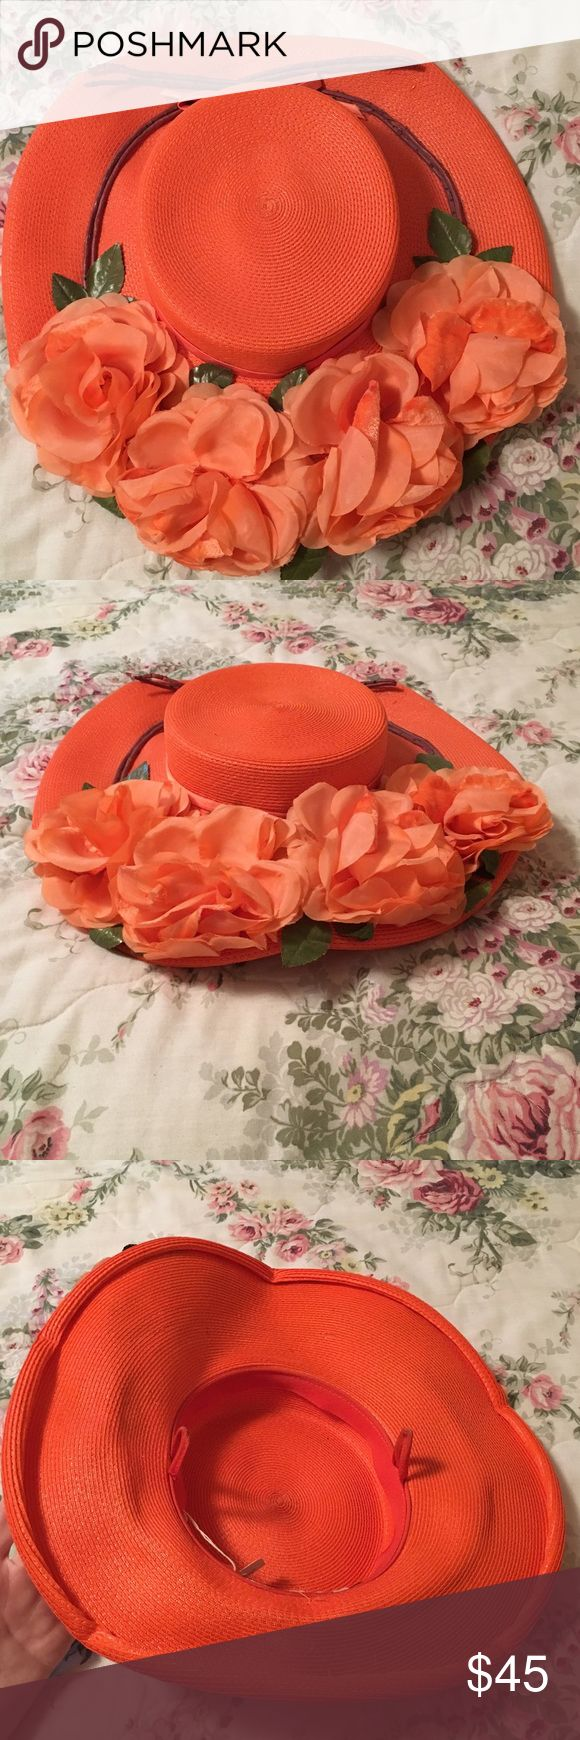 Antique Flat Flowered Orange Hat! Perfect for an Instagram-worthy dress up party! Flat orange hat, lots of flowers on top! Has the original price tag on it! By Parkridge Exclusives. Awesome condition. Feel free to make an offer or ask questions! Parkridge Exclusives Accessories Hats